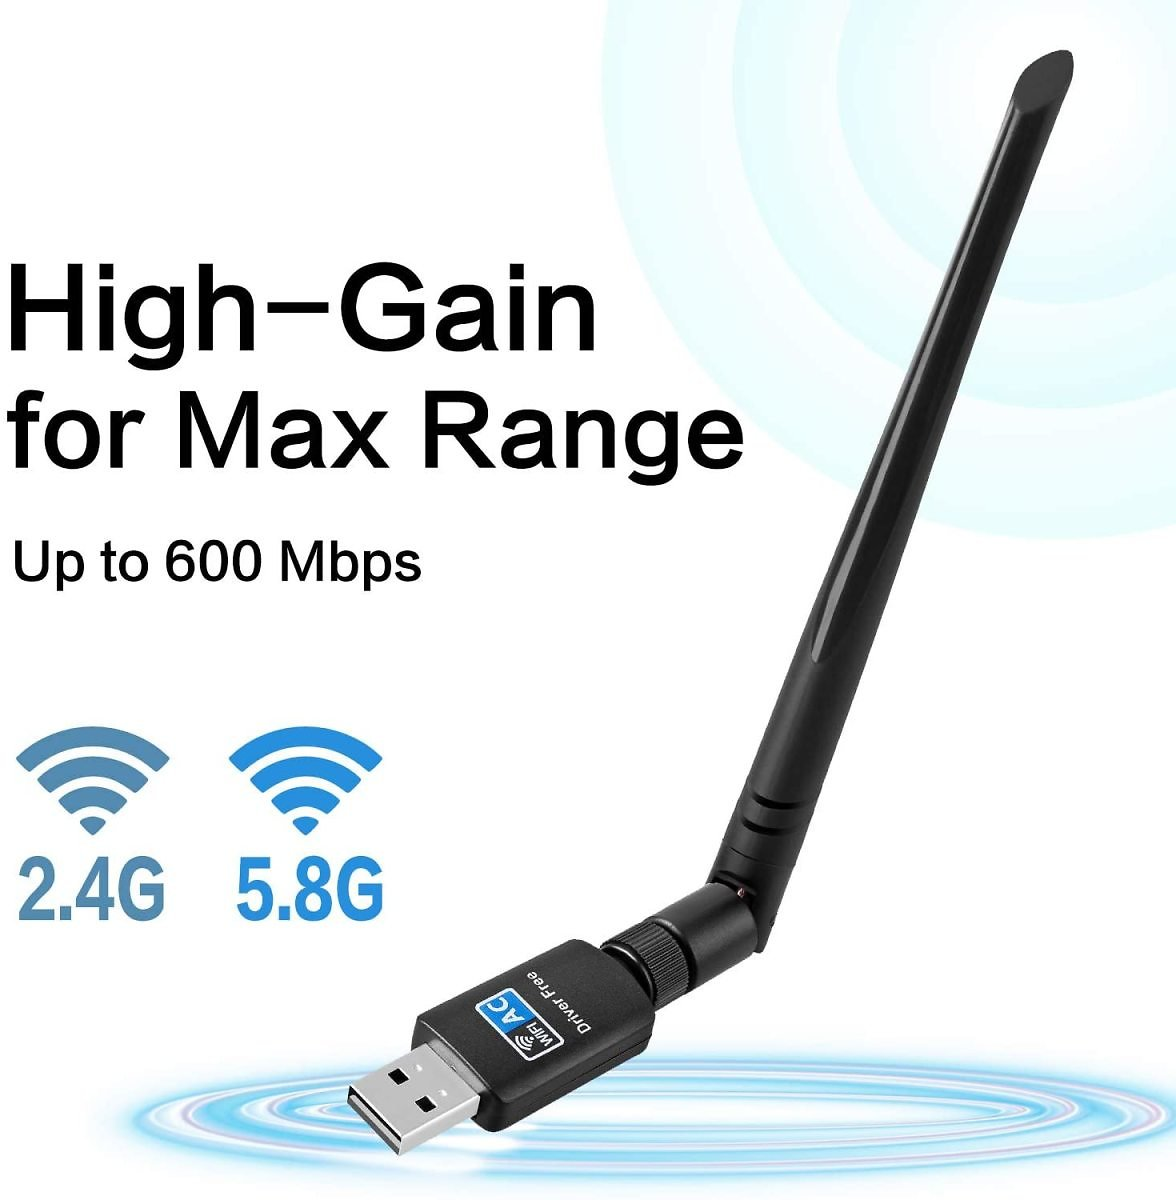 600Mbps,802.11ac USB Wireless Network Adapter with Dual Band 2.4GHz/5.8GHz 5dBi High Gain Antenna for Desktop